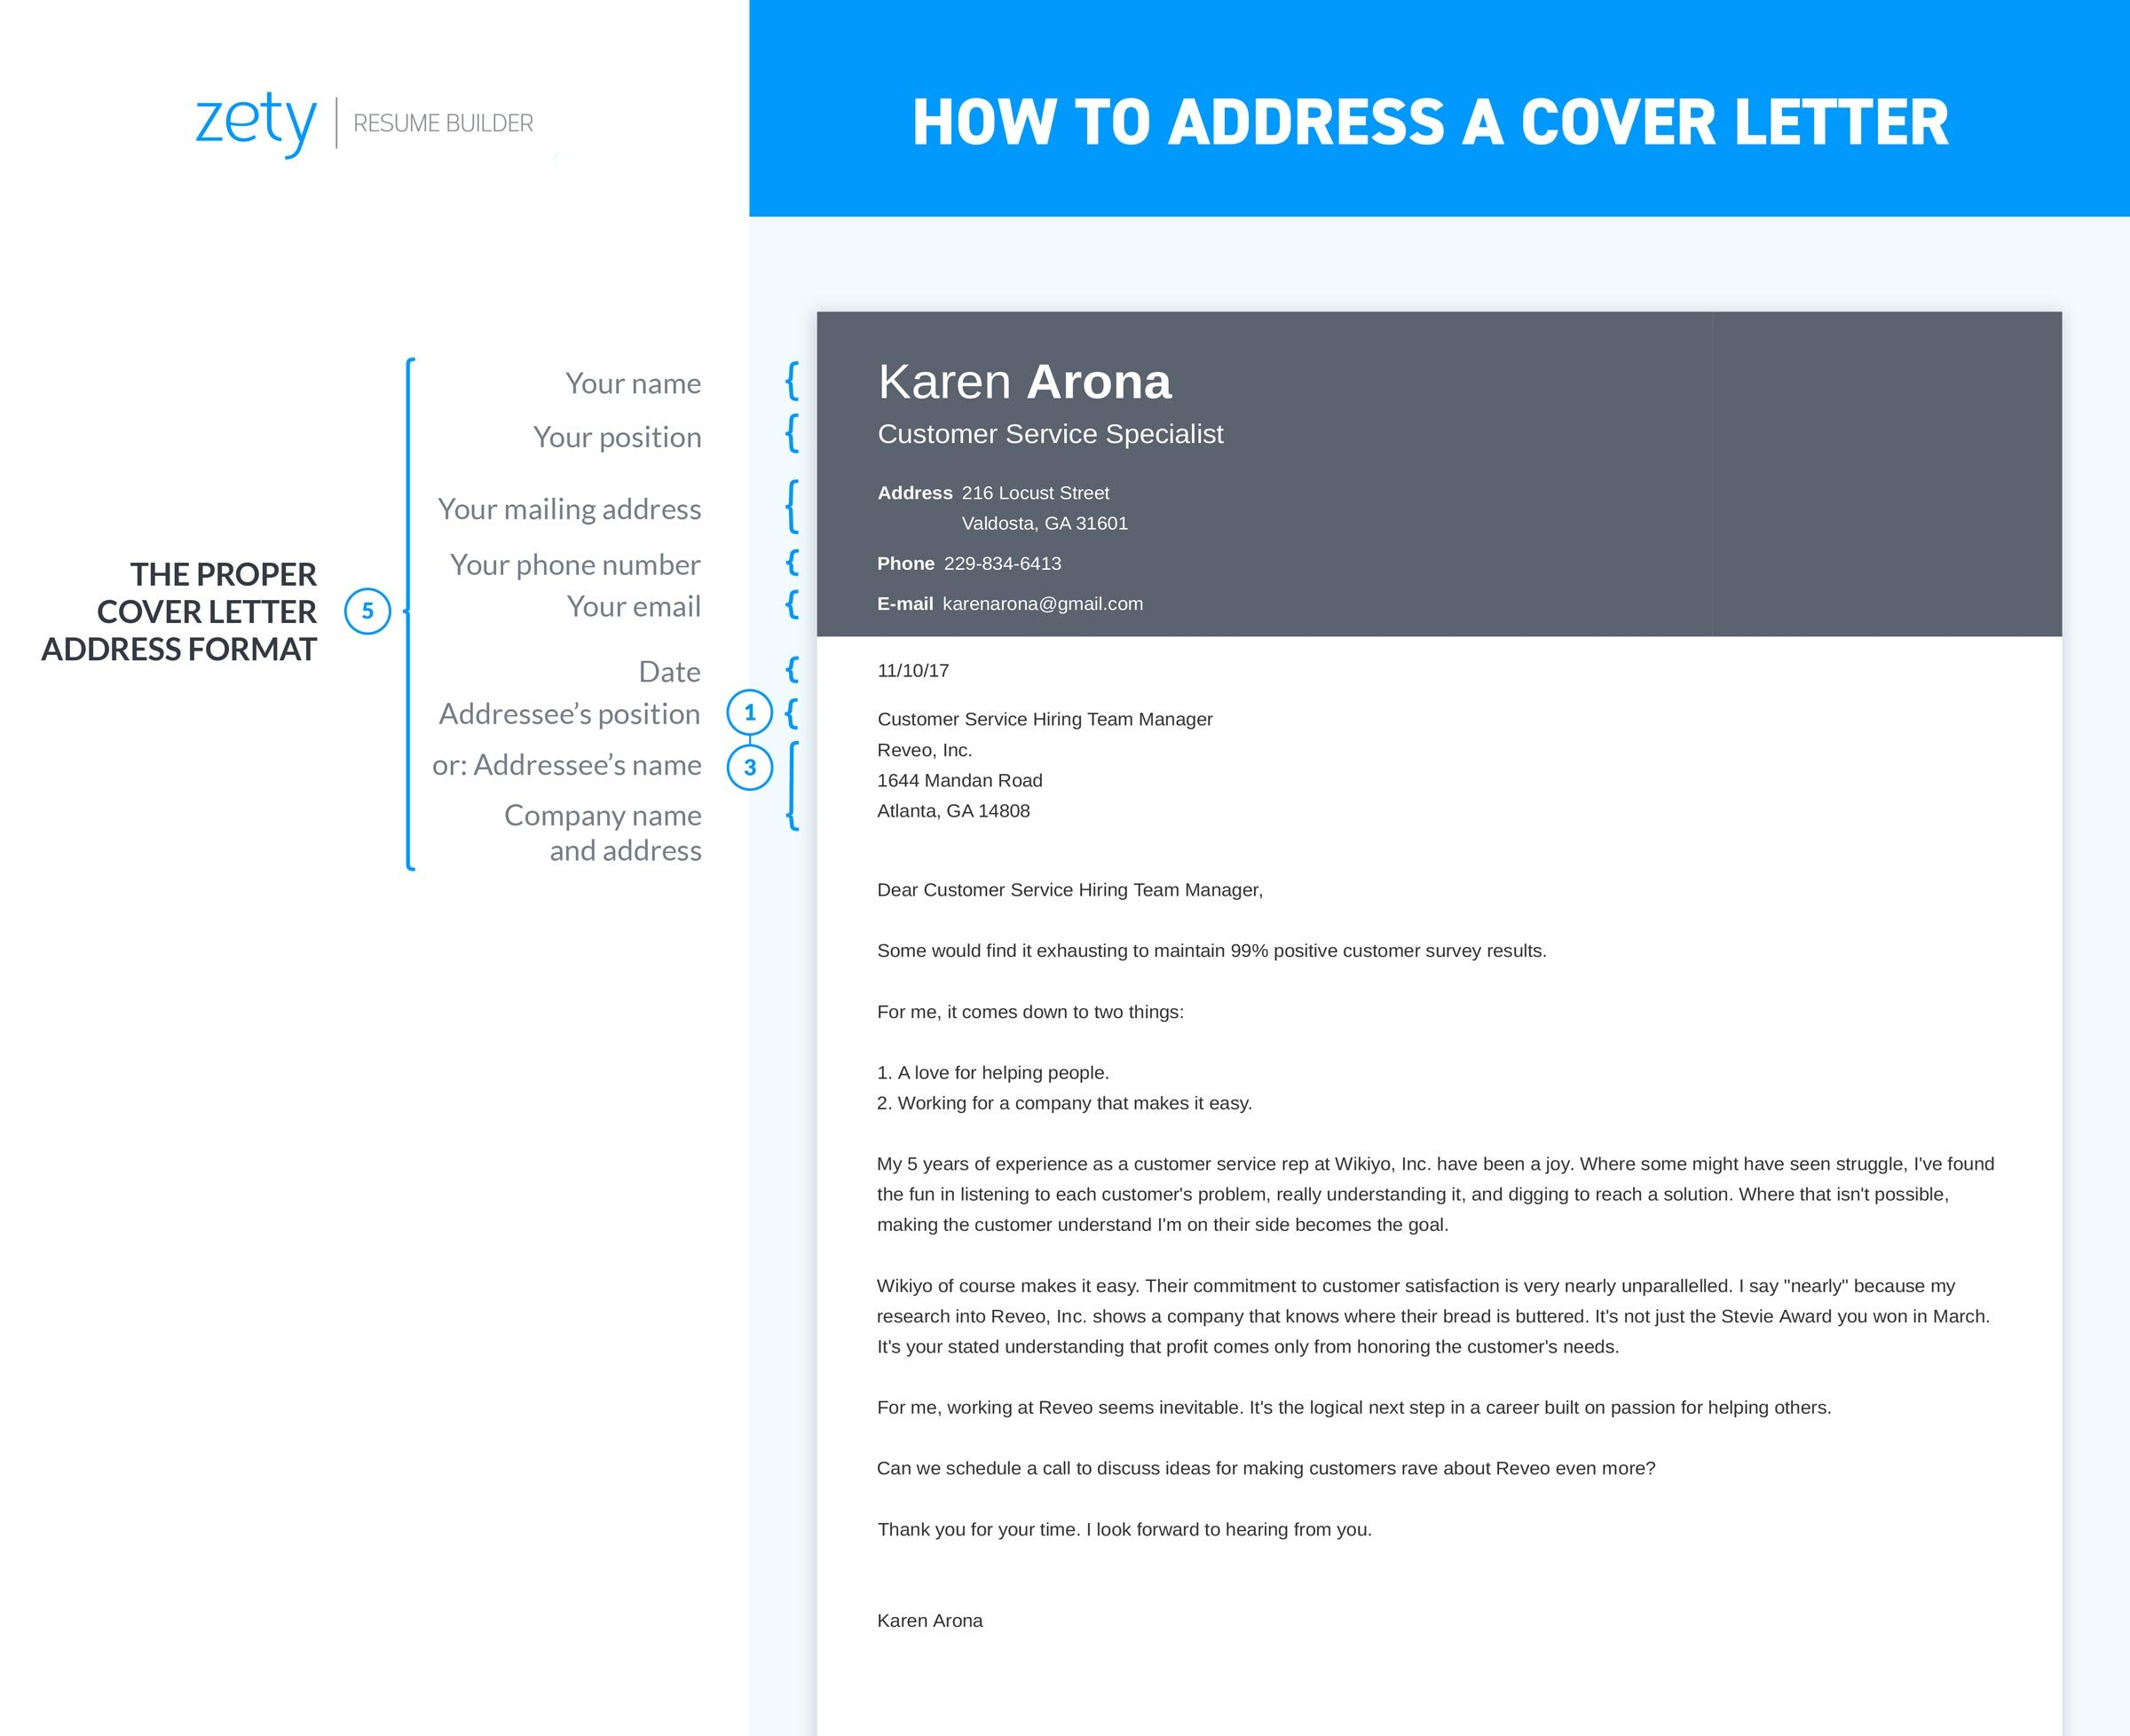 How to address a cover letter sample guide 20 examples for Proper way to start a cover letter